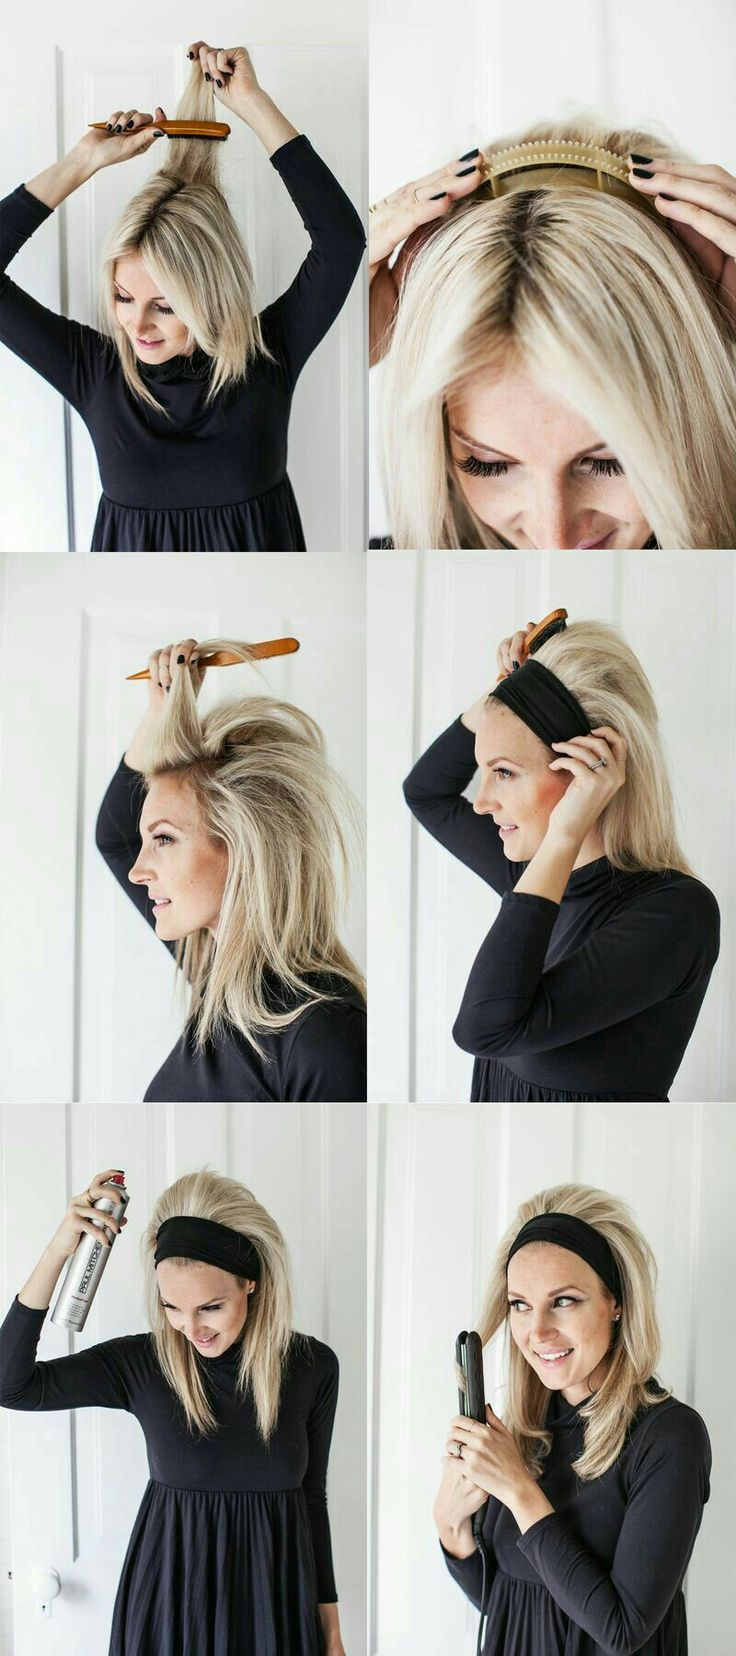 23 best College hairstyles images on Pinterest | College haircuts ...